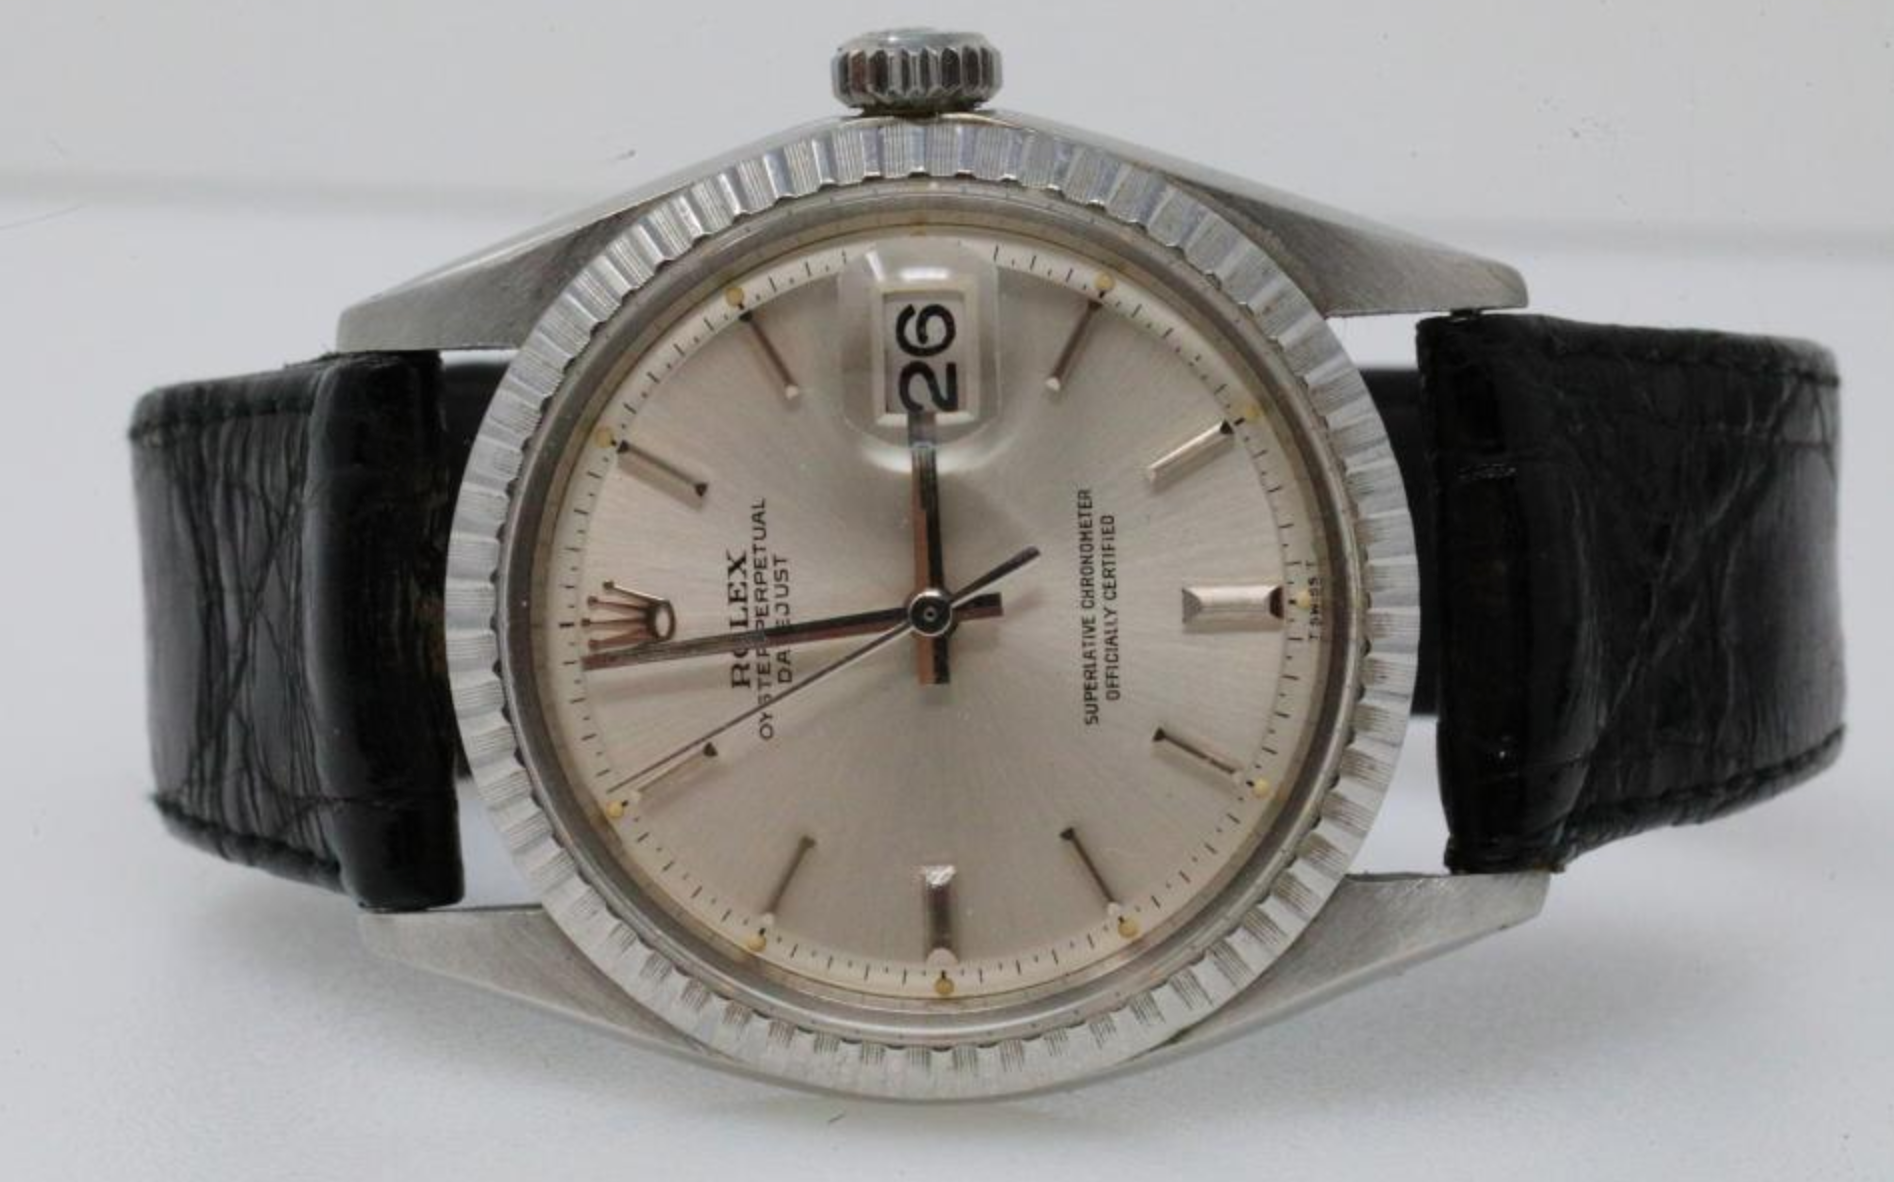 Now's Your Chance to Own Marlon Brando's Rolex